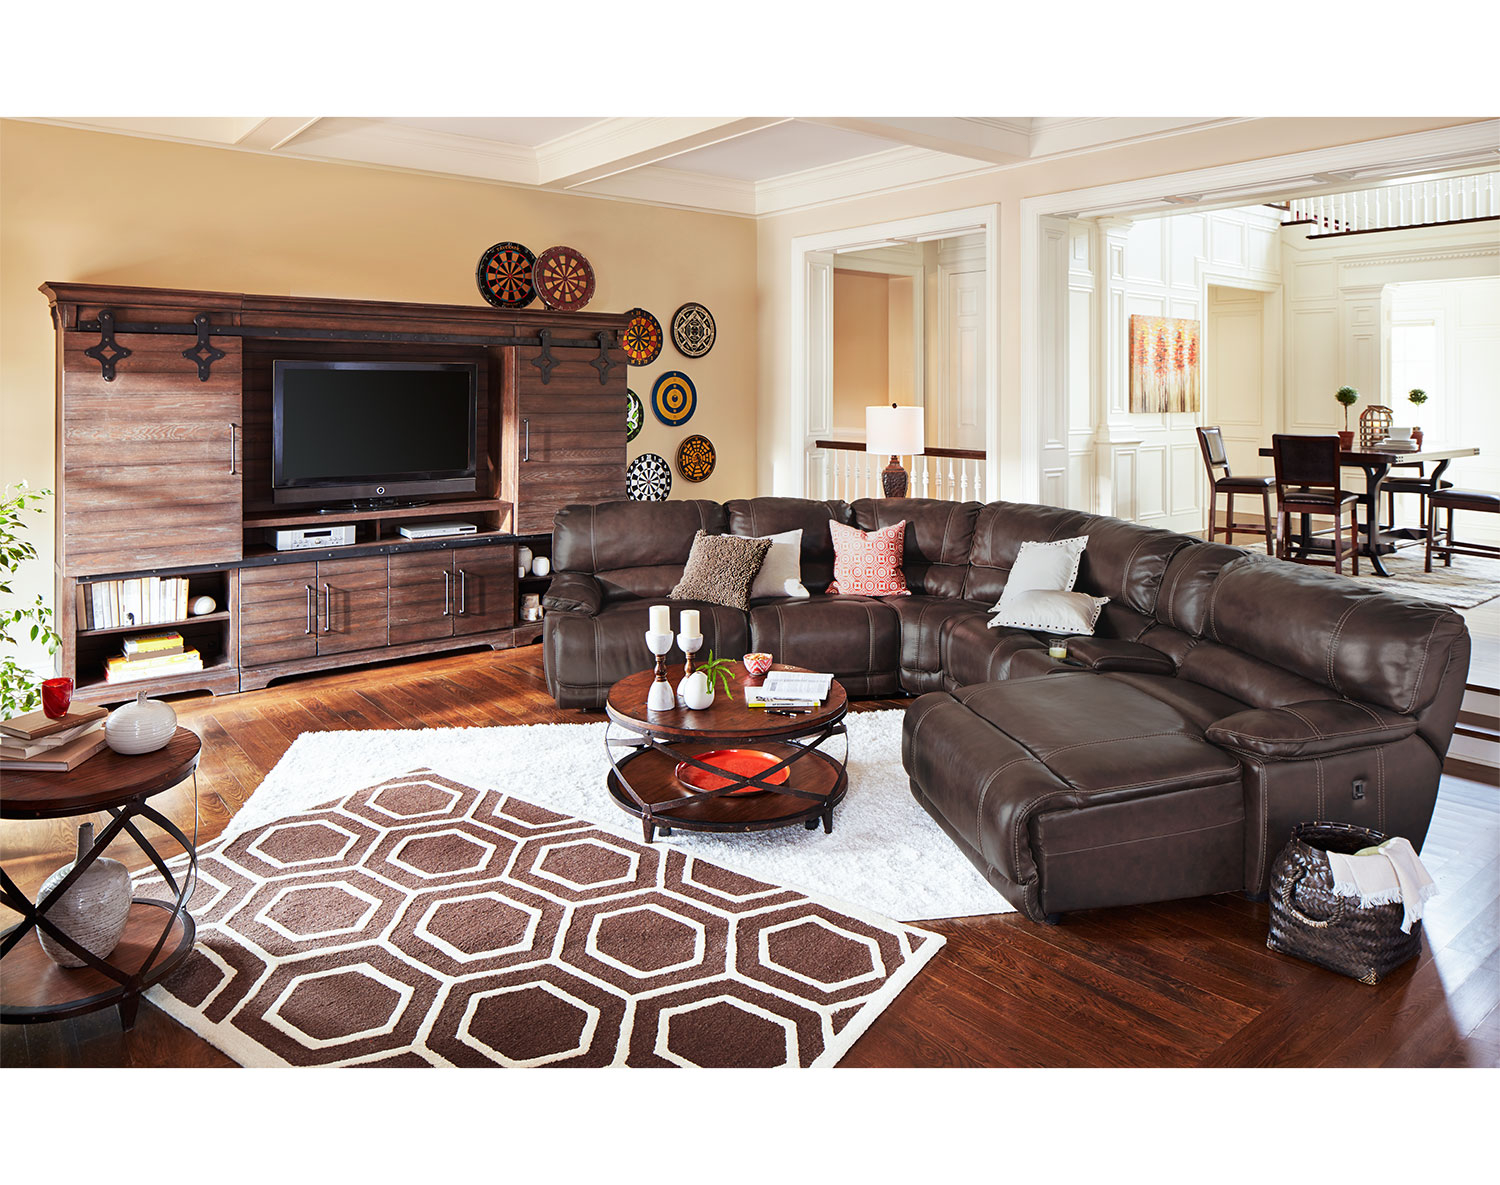 city furniture living room sets colors with dark wood floors 8 value coffee tables images ideas download mesmerizing brown area rug cover white also half